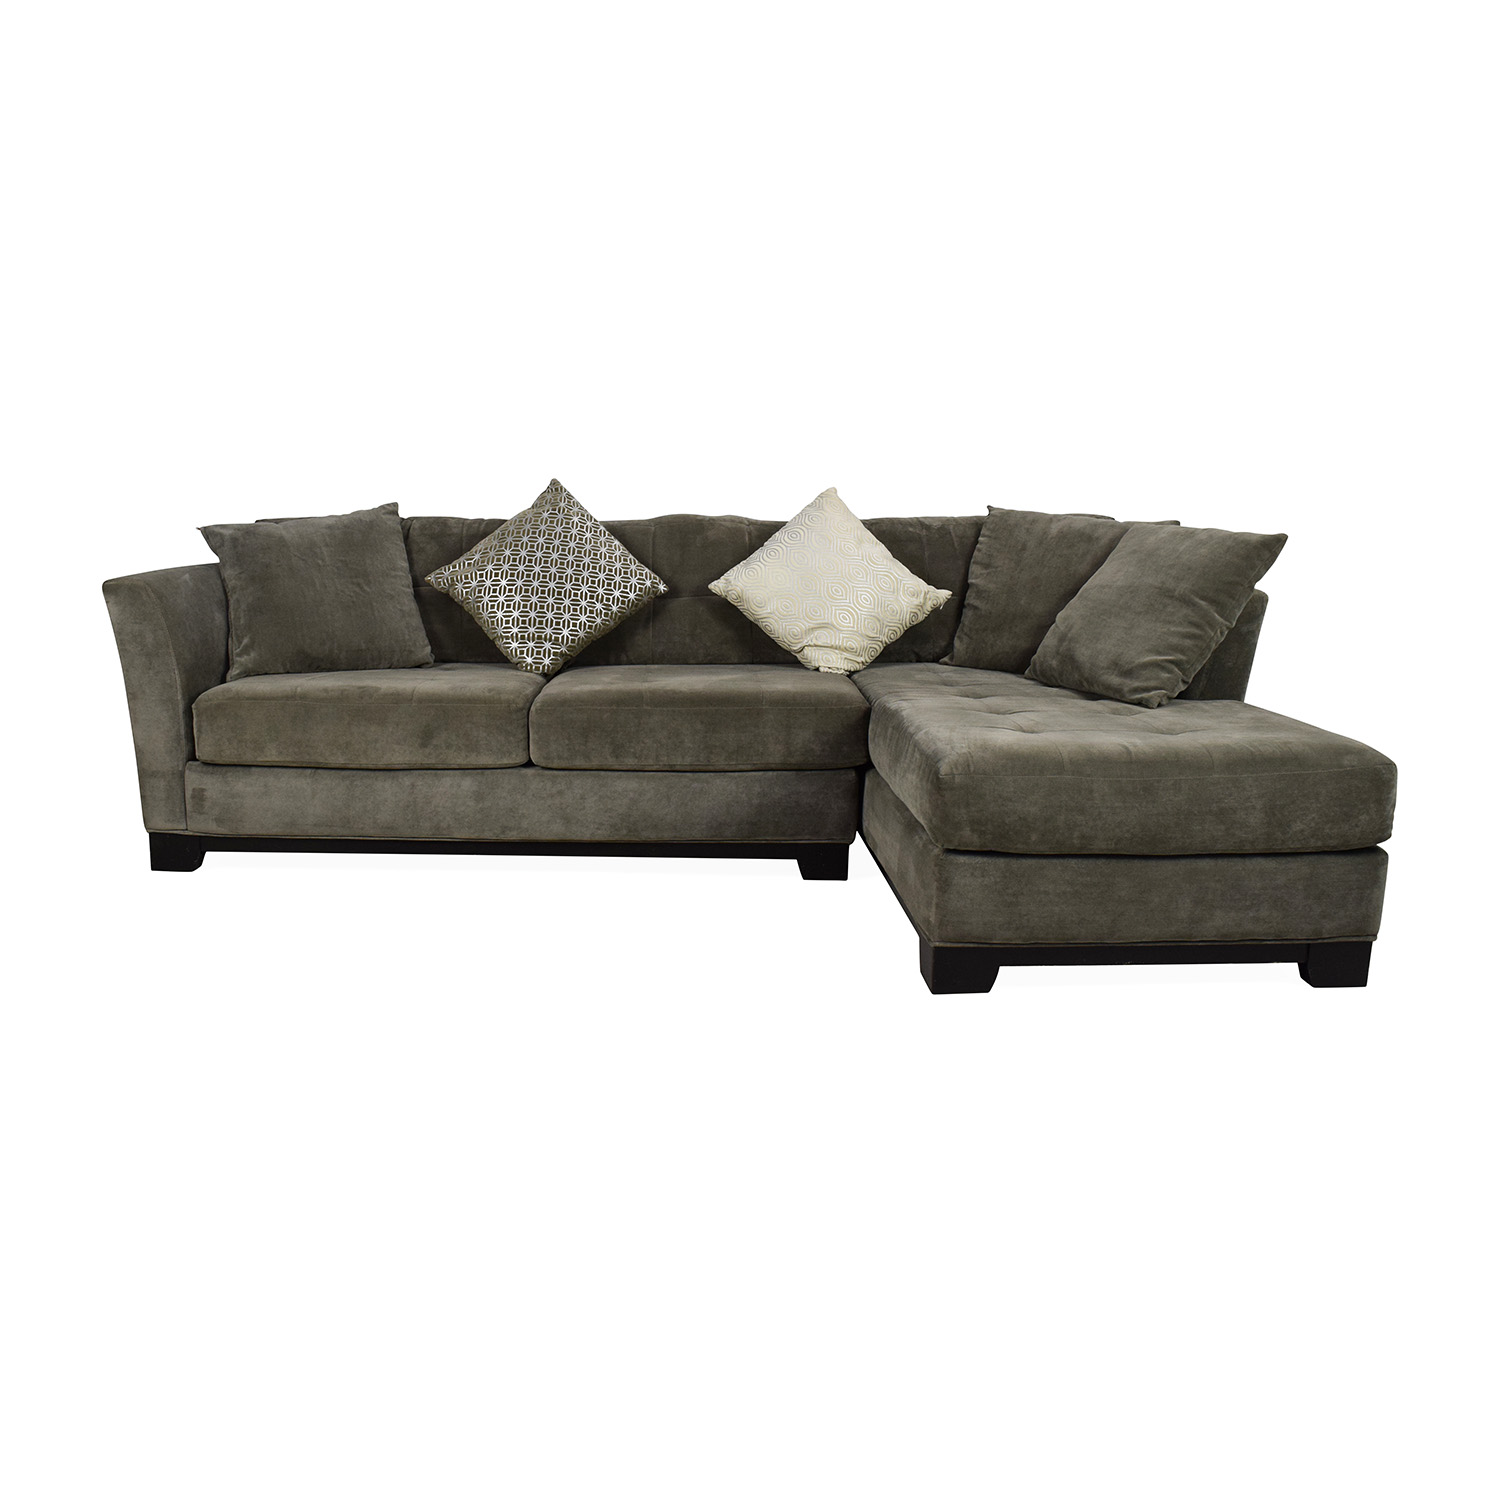 50 Off Macy S Macy S Gray Sectional Couch With Chaise Sofas